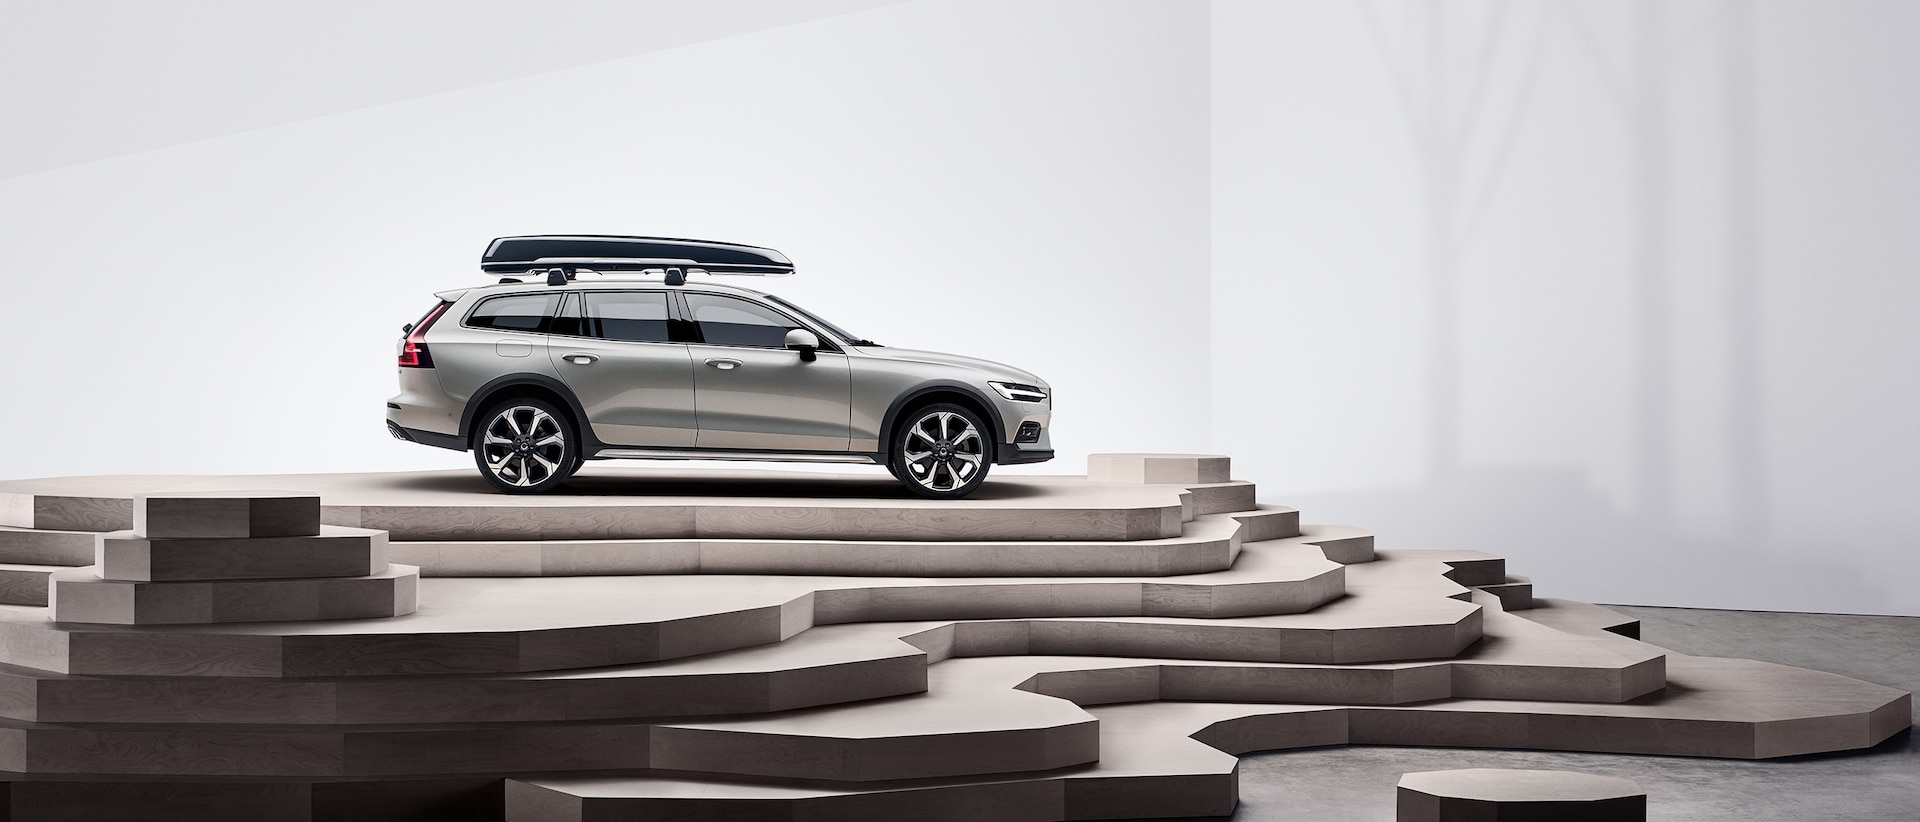 A beige Volvo V60 Cross Country with a roof box is parked at the top of some steps.